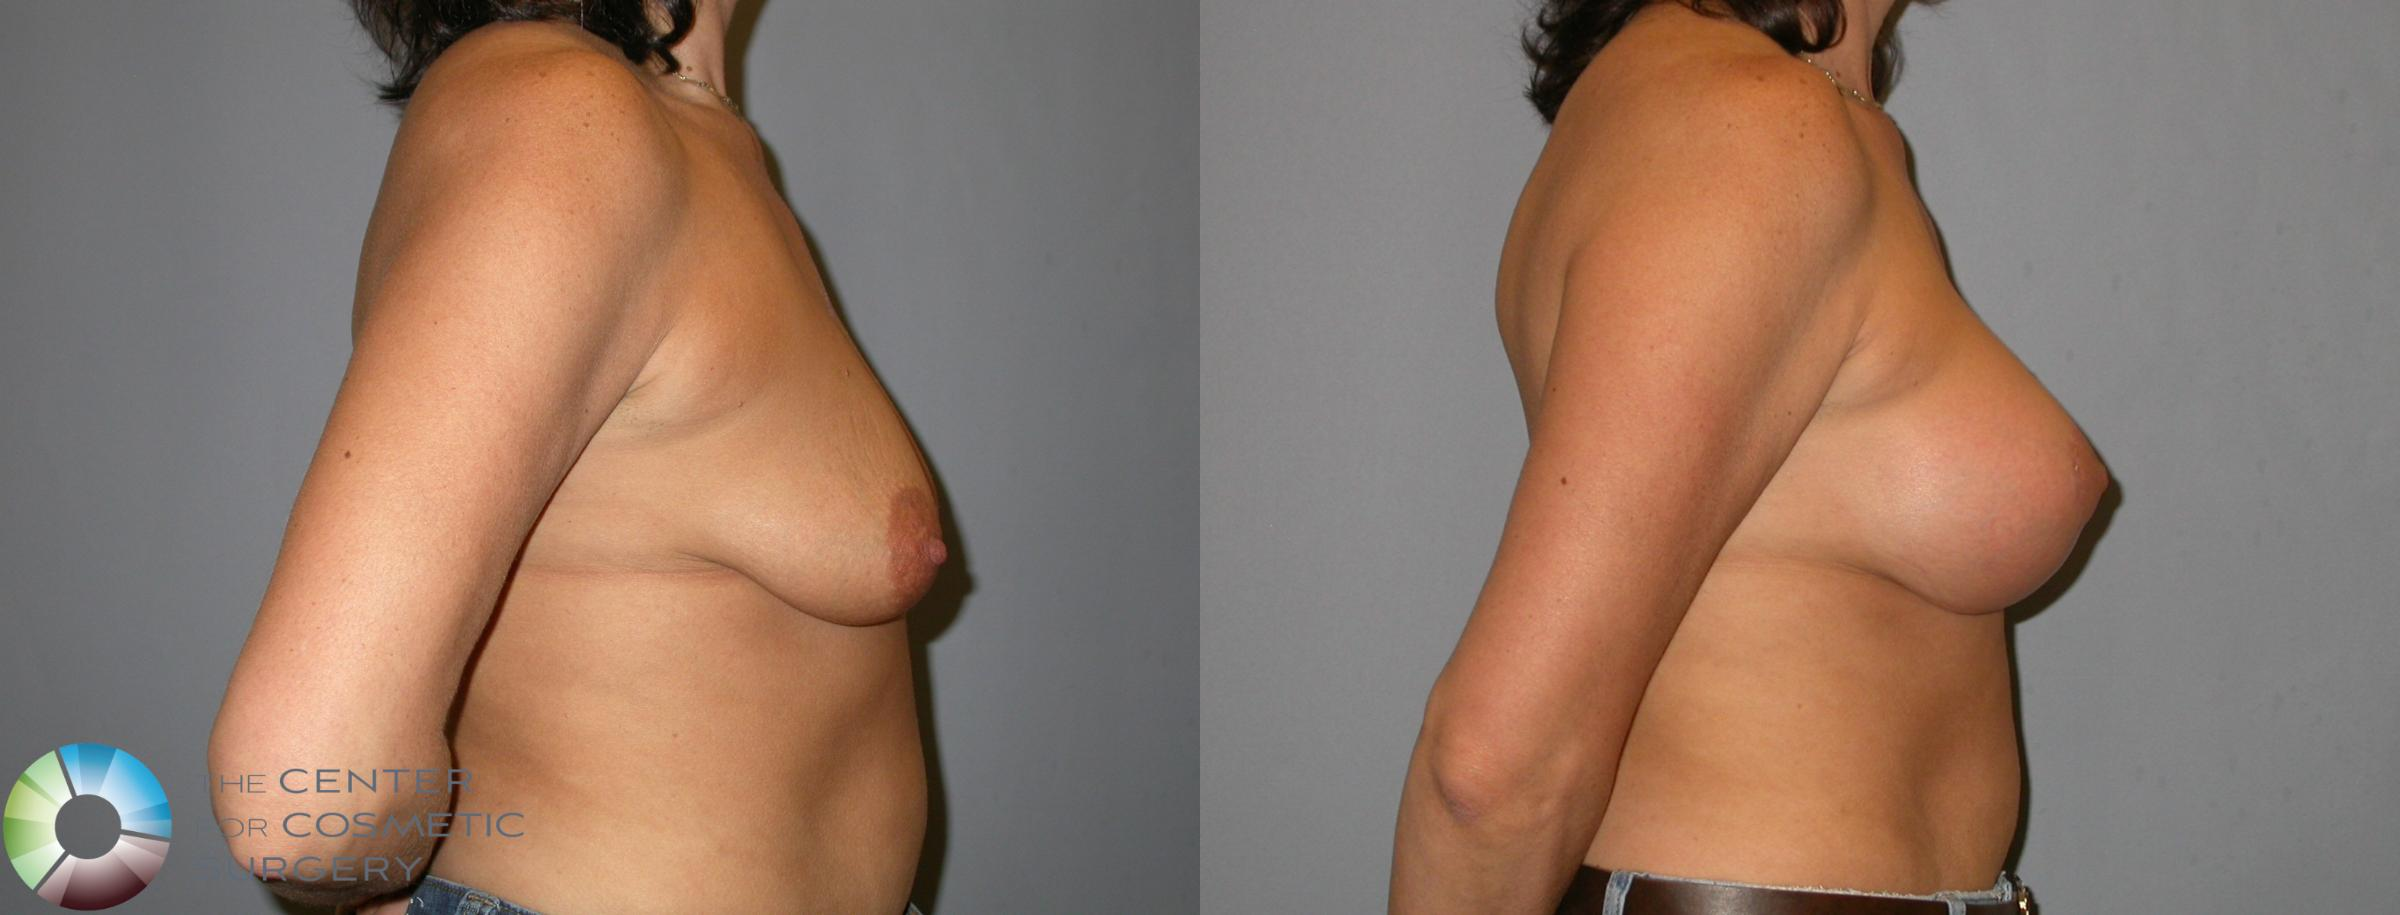 Breast Lift Case 345 Before & After View #3 | Golden, CO | The Center for Cosmetic Surgery